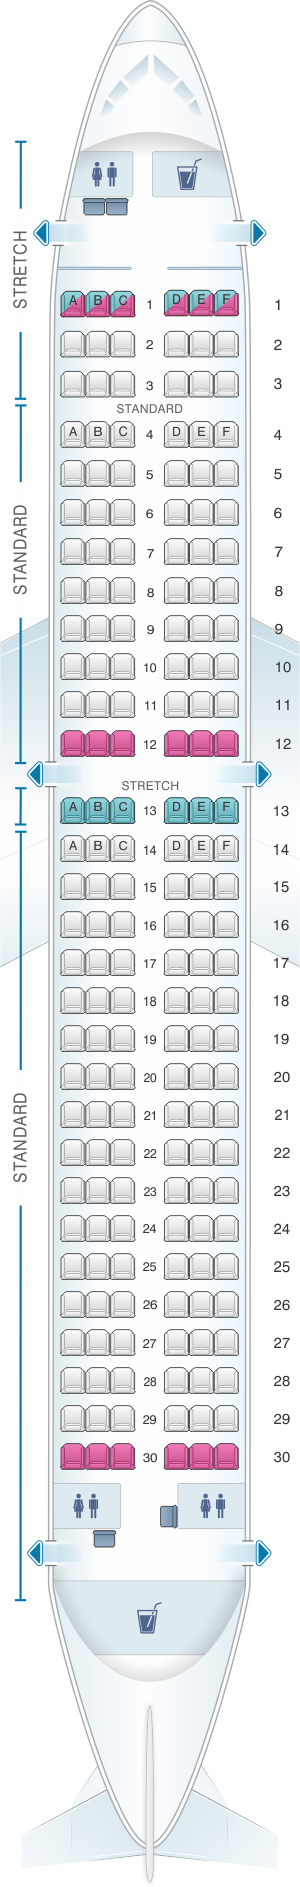 Seat map for Frontier Airlines Airbus A320 180pax